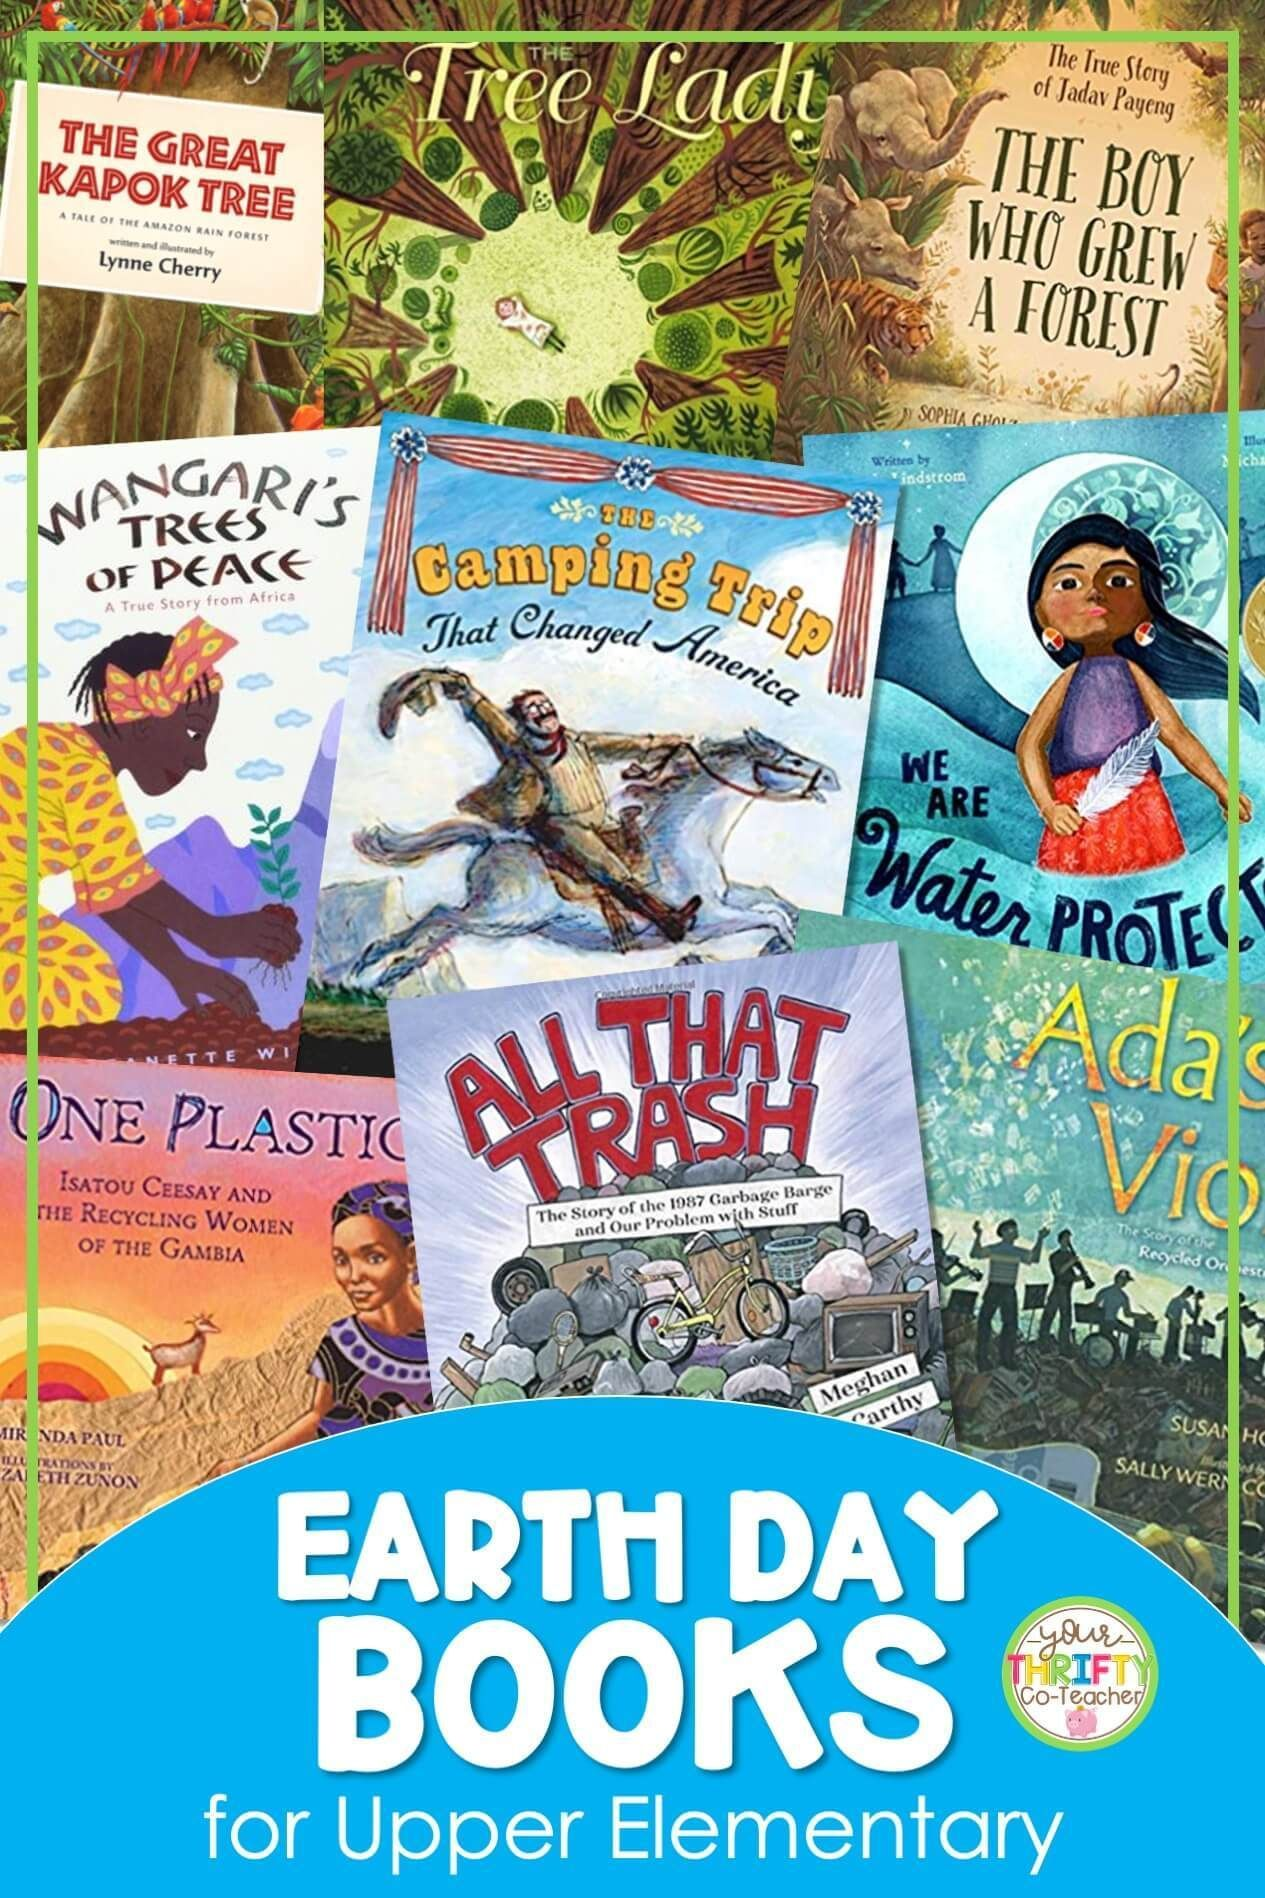 Earth Day Books For Upper Elementary Your Thrifty Co Teacher In 2021 Earth Day Activities Day Book Elementary Books Earth day read alouds